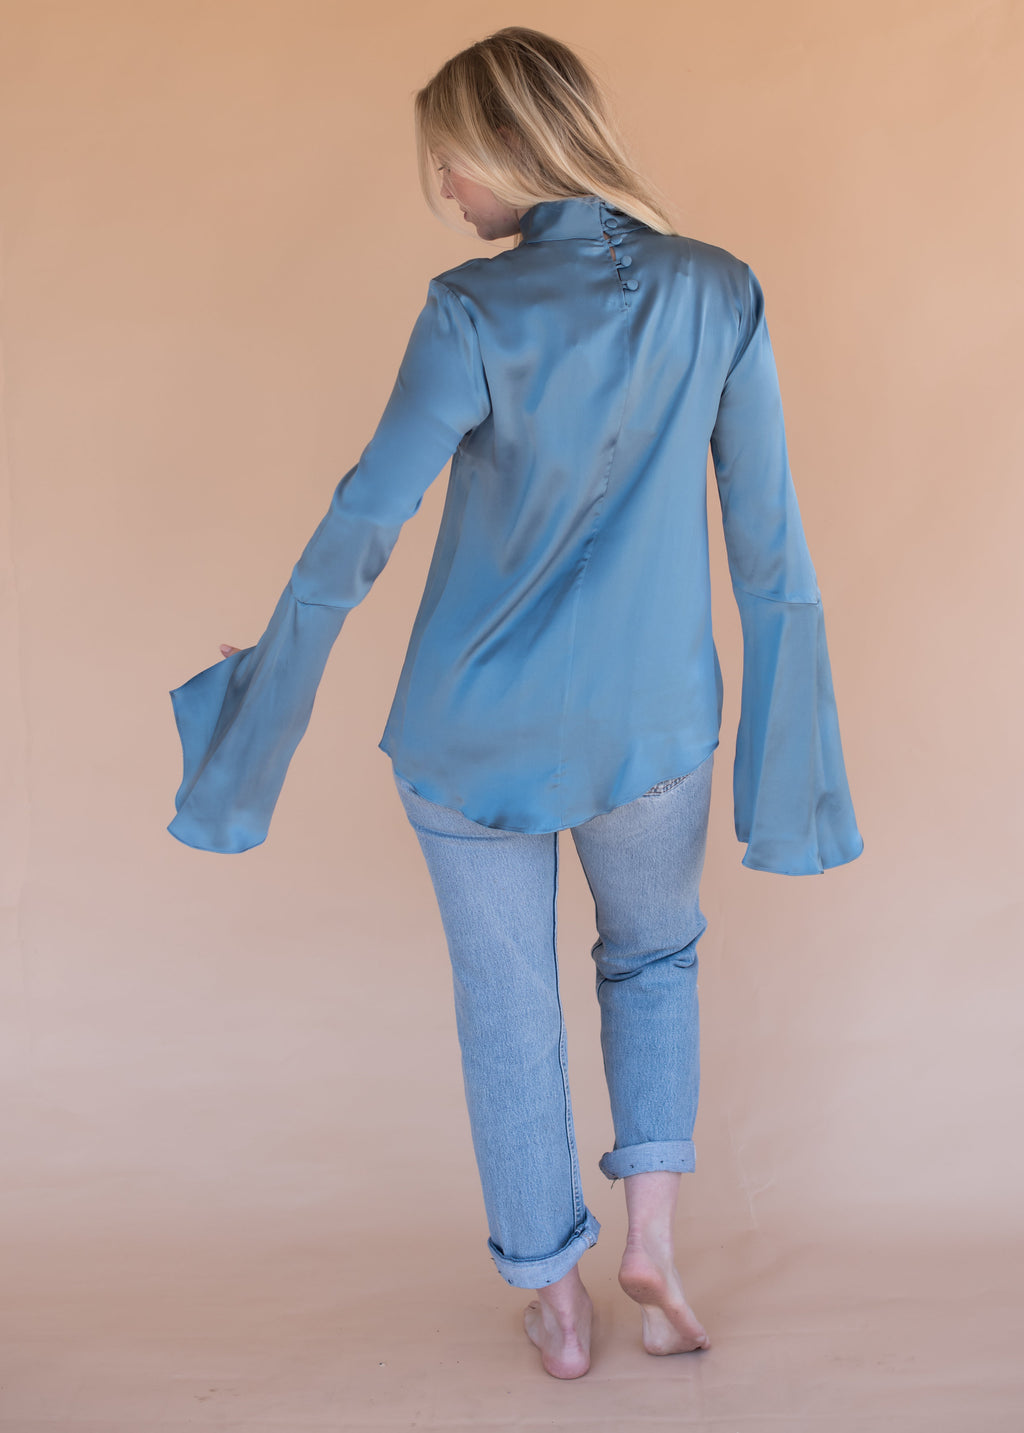 Women's Silk Blue Blouse with Bell Sleeves and Buttons